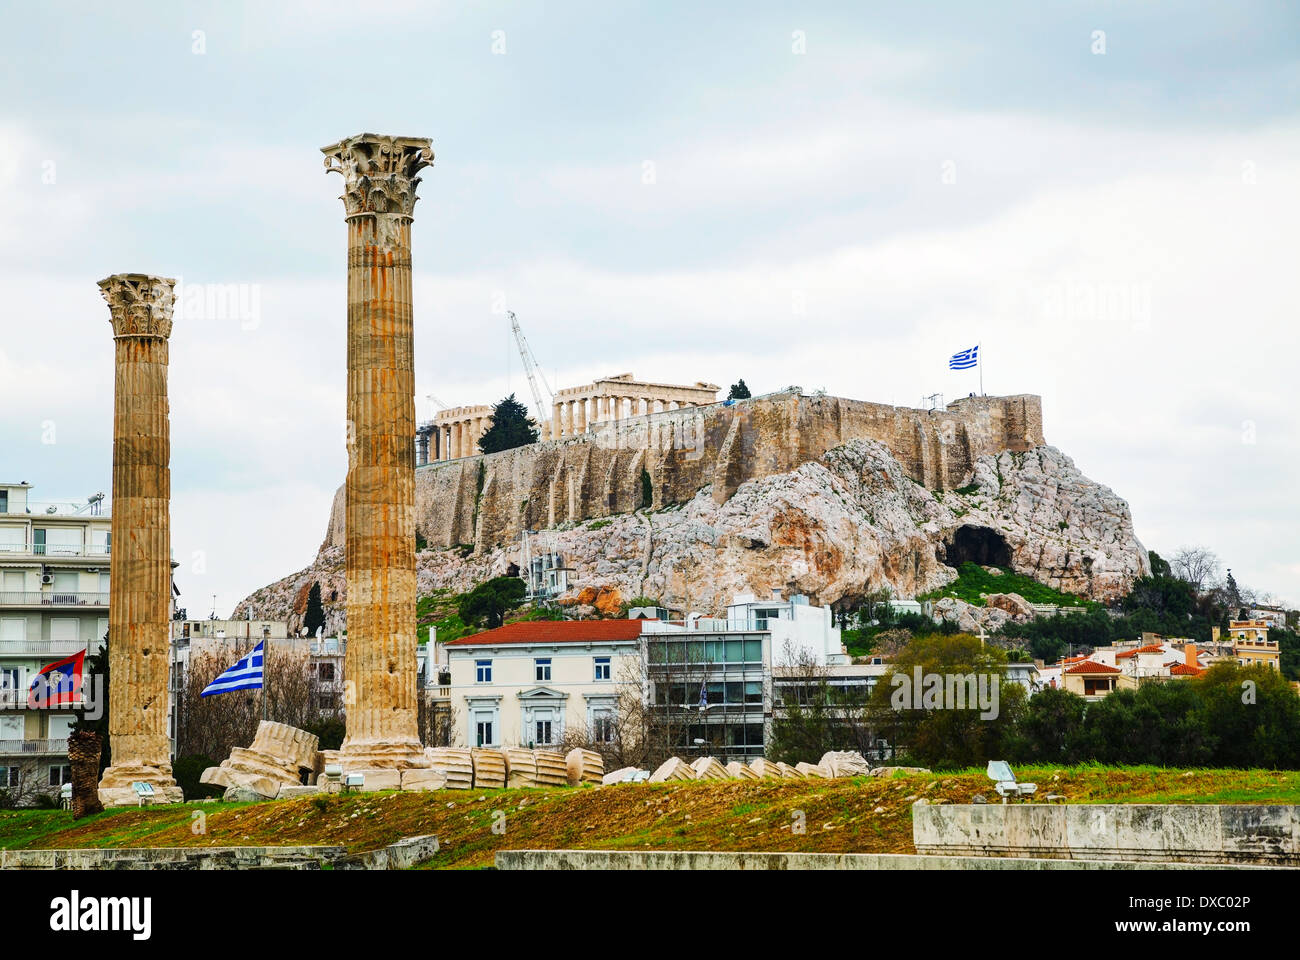 Temple of Olympian Zeus in Athens on an overcast day - Stock Image